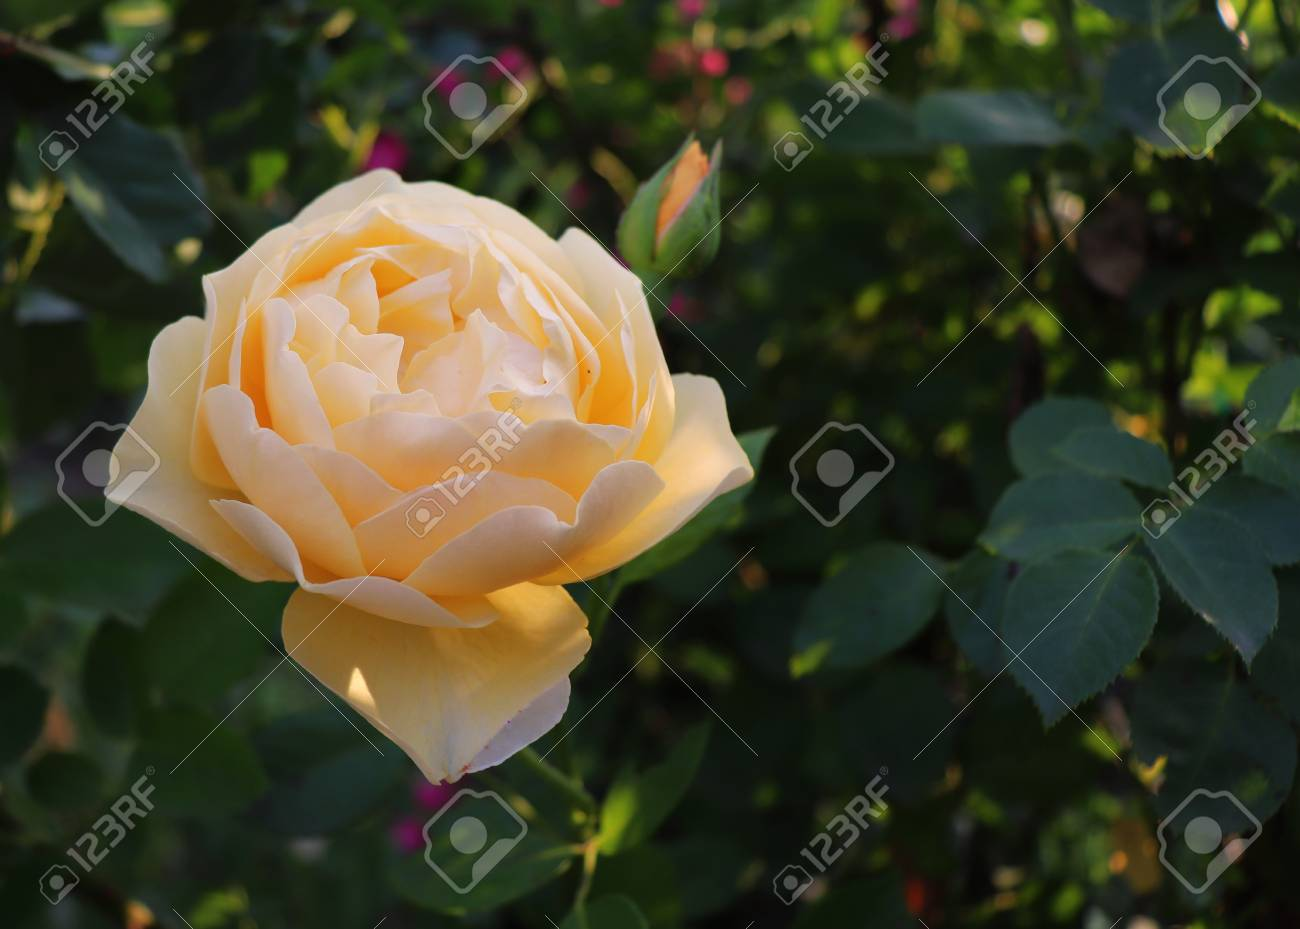 Closeup rose graham thomas in the organic garden with blurred closeup rose graham thomas in the organic garden with blurred foliageture and rose concept thecheapjerseys Images